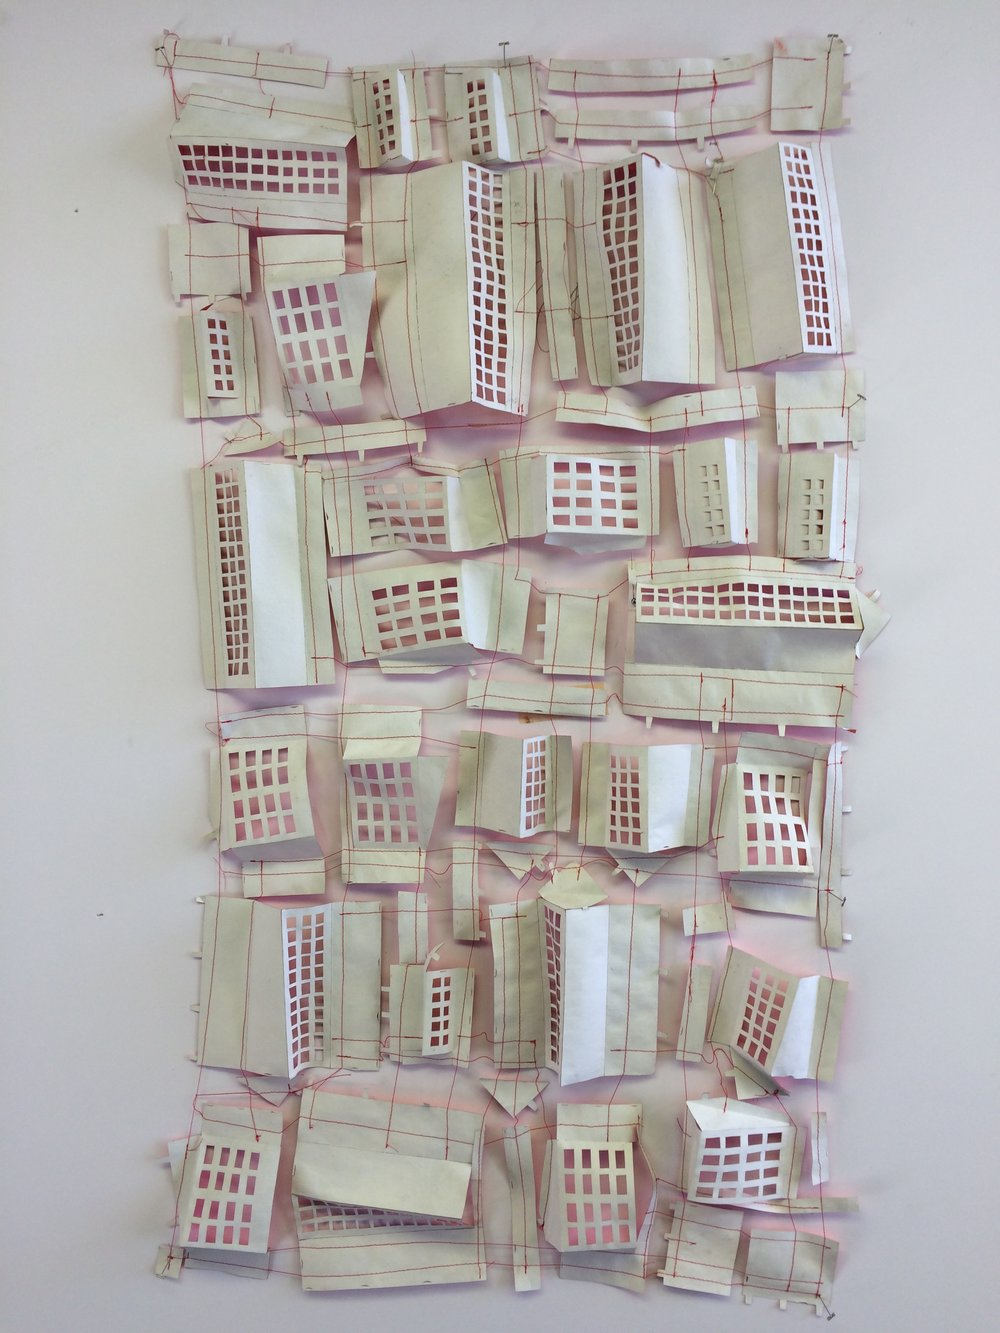 City in Stitches, 2016